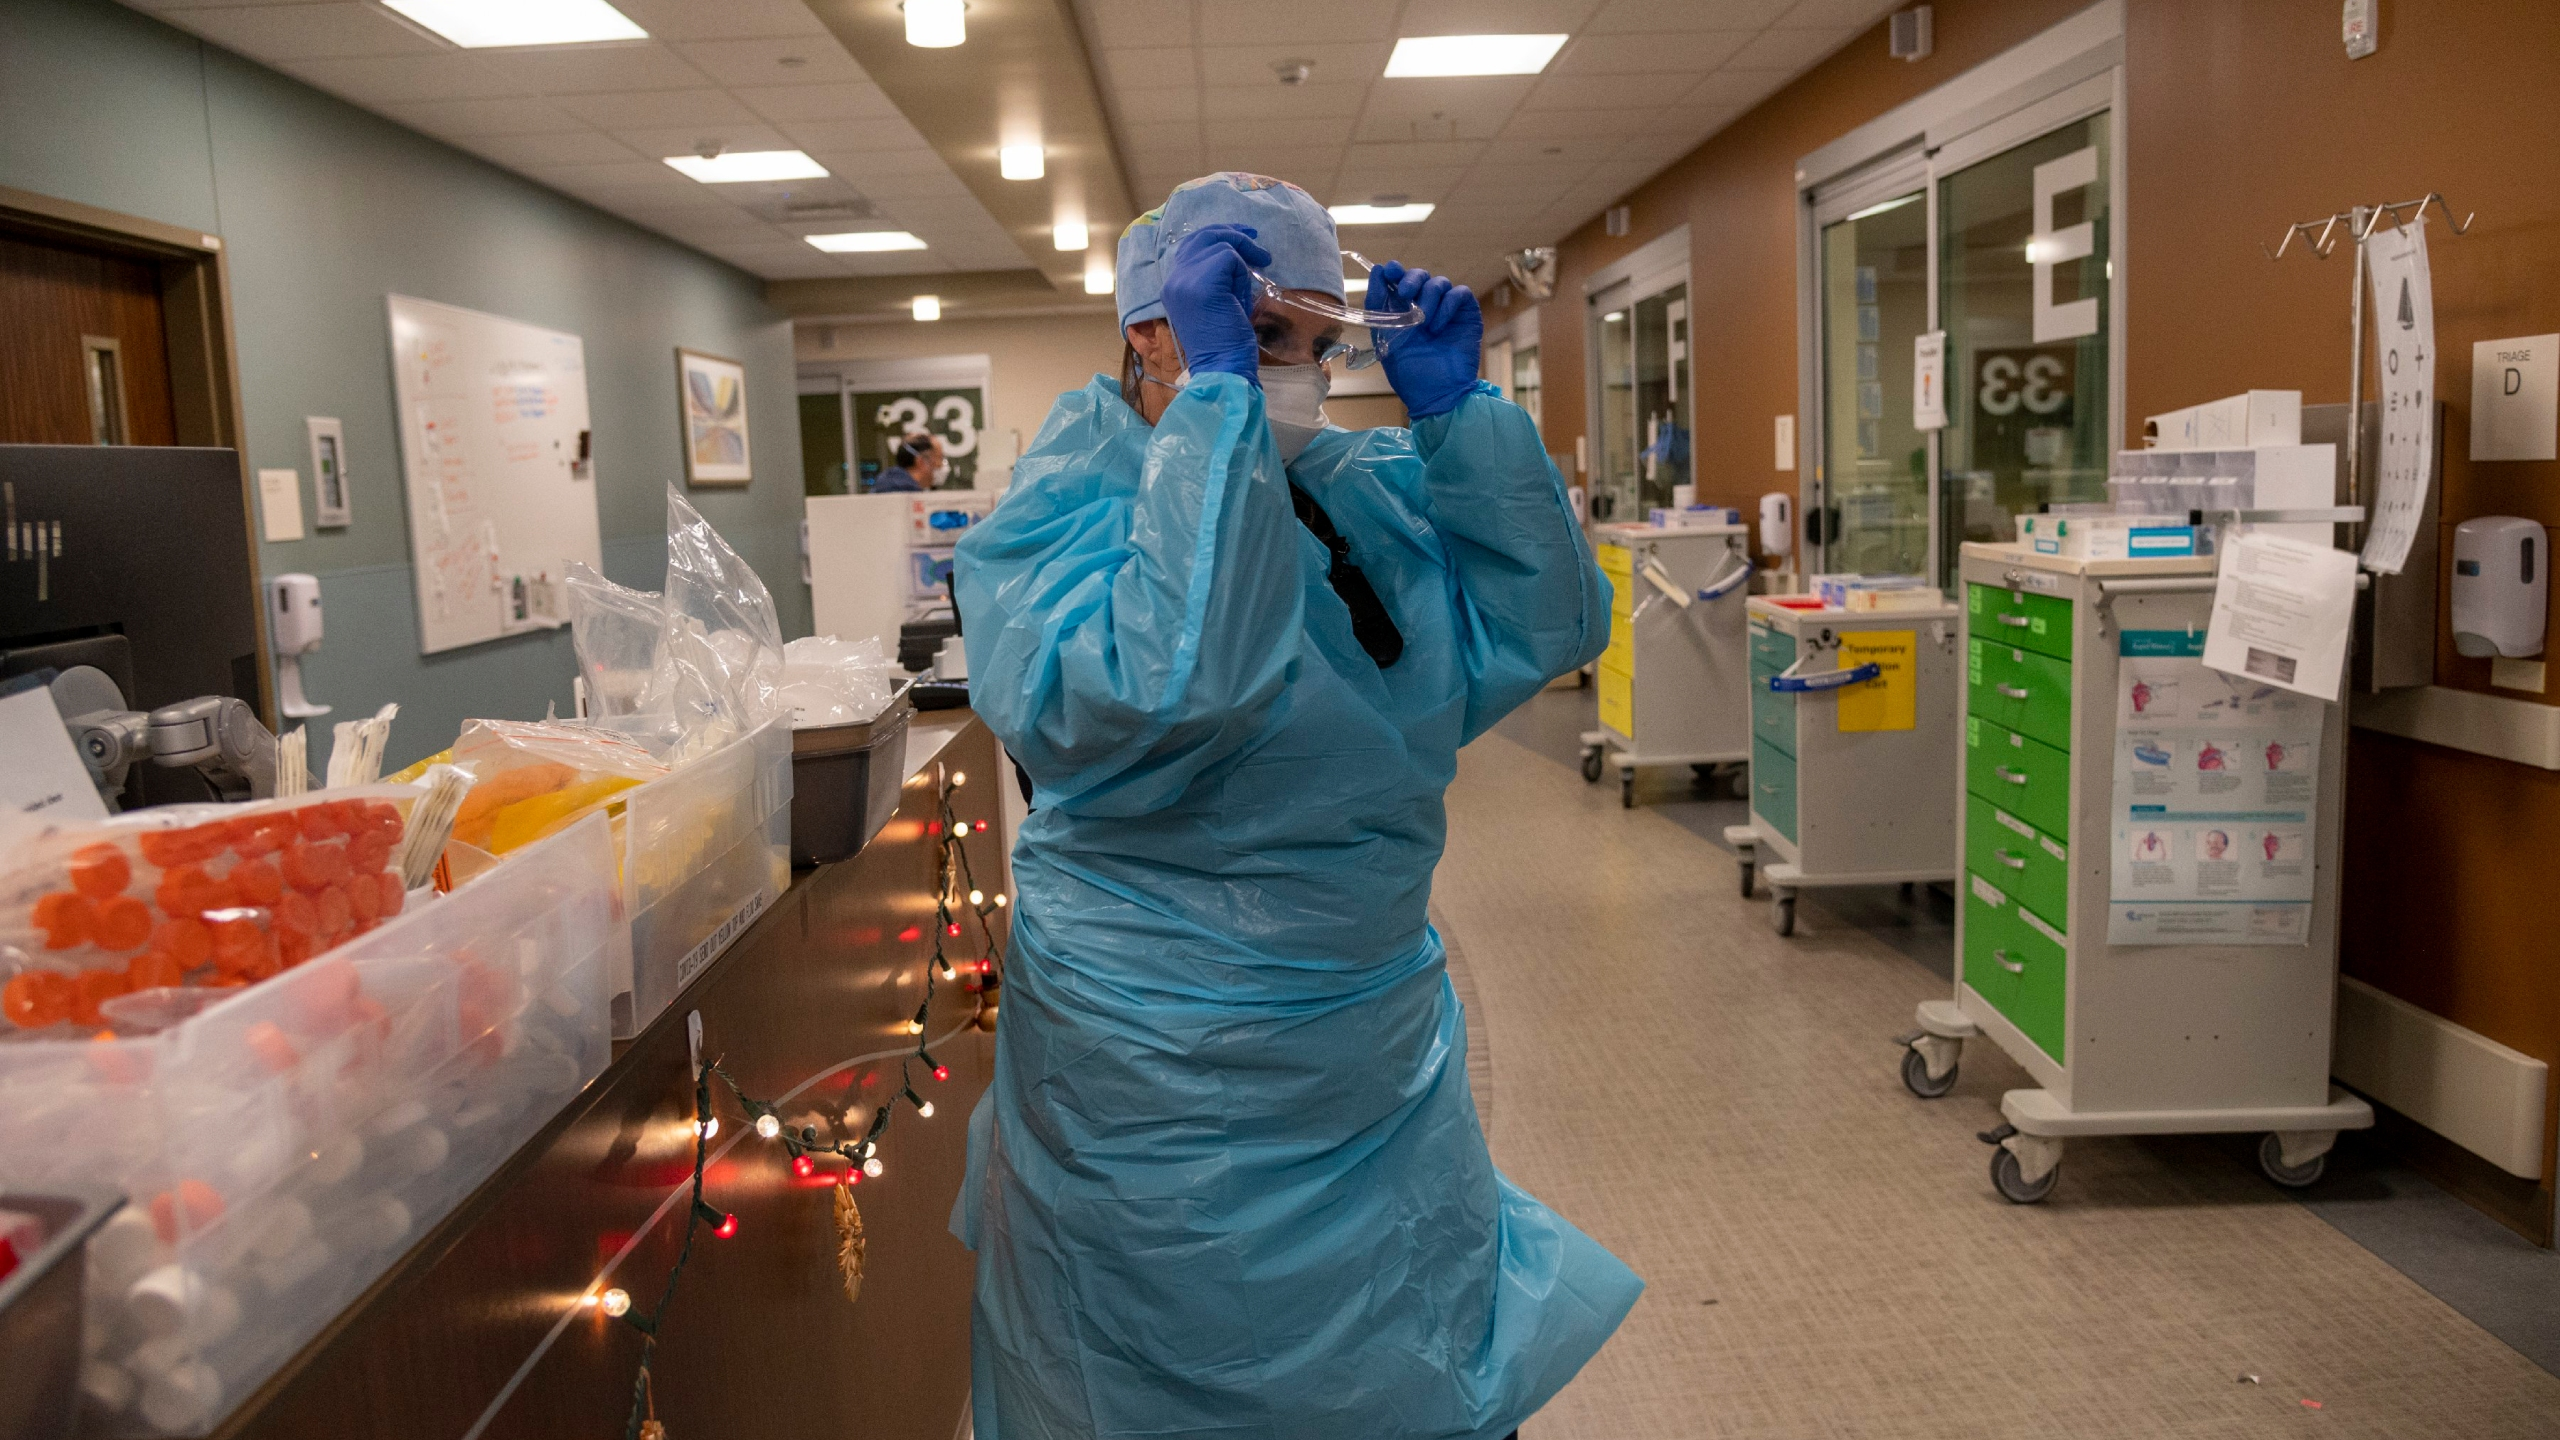 Registered Nurse Allison Shiftar puts on protective glasses as she gets ready to go into one of the triage rooms to care for a COVID-19 positive patient in the emergency department at Sutter Roseville Medical Center in Roseville, Calif. on Dec. 22, 2020. (Renee C. Byer/The Sacramento Bee via AP, Pool)